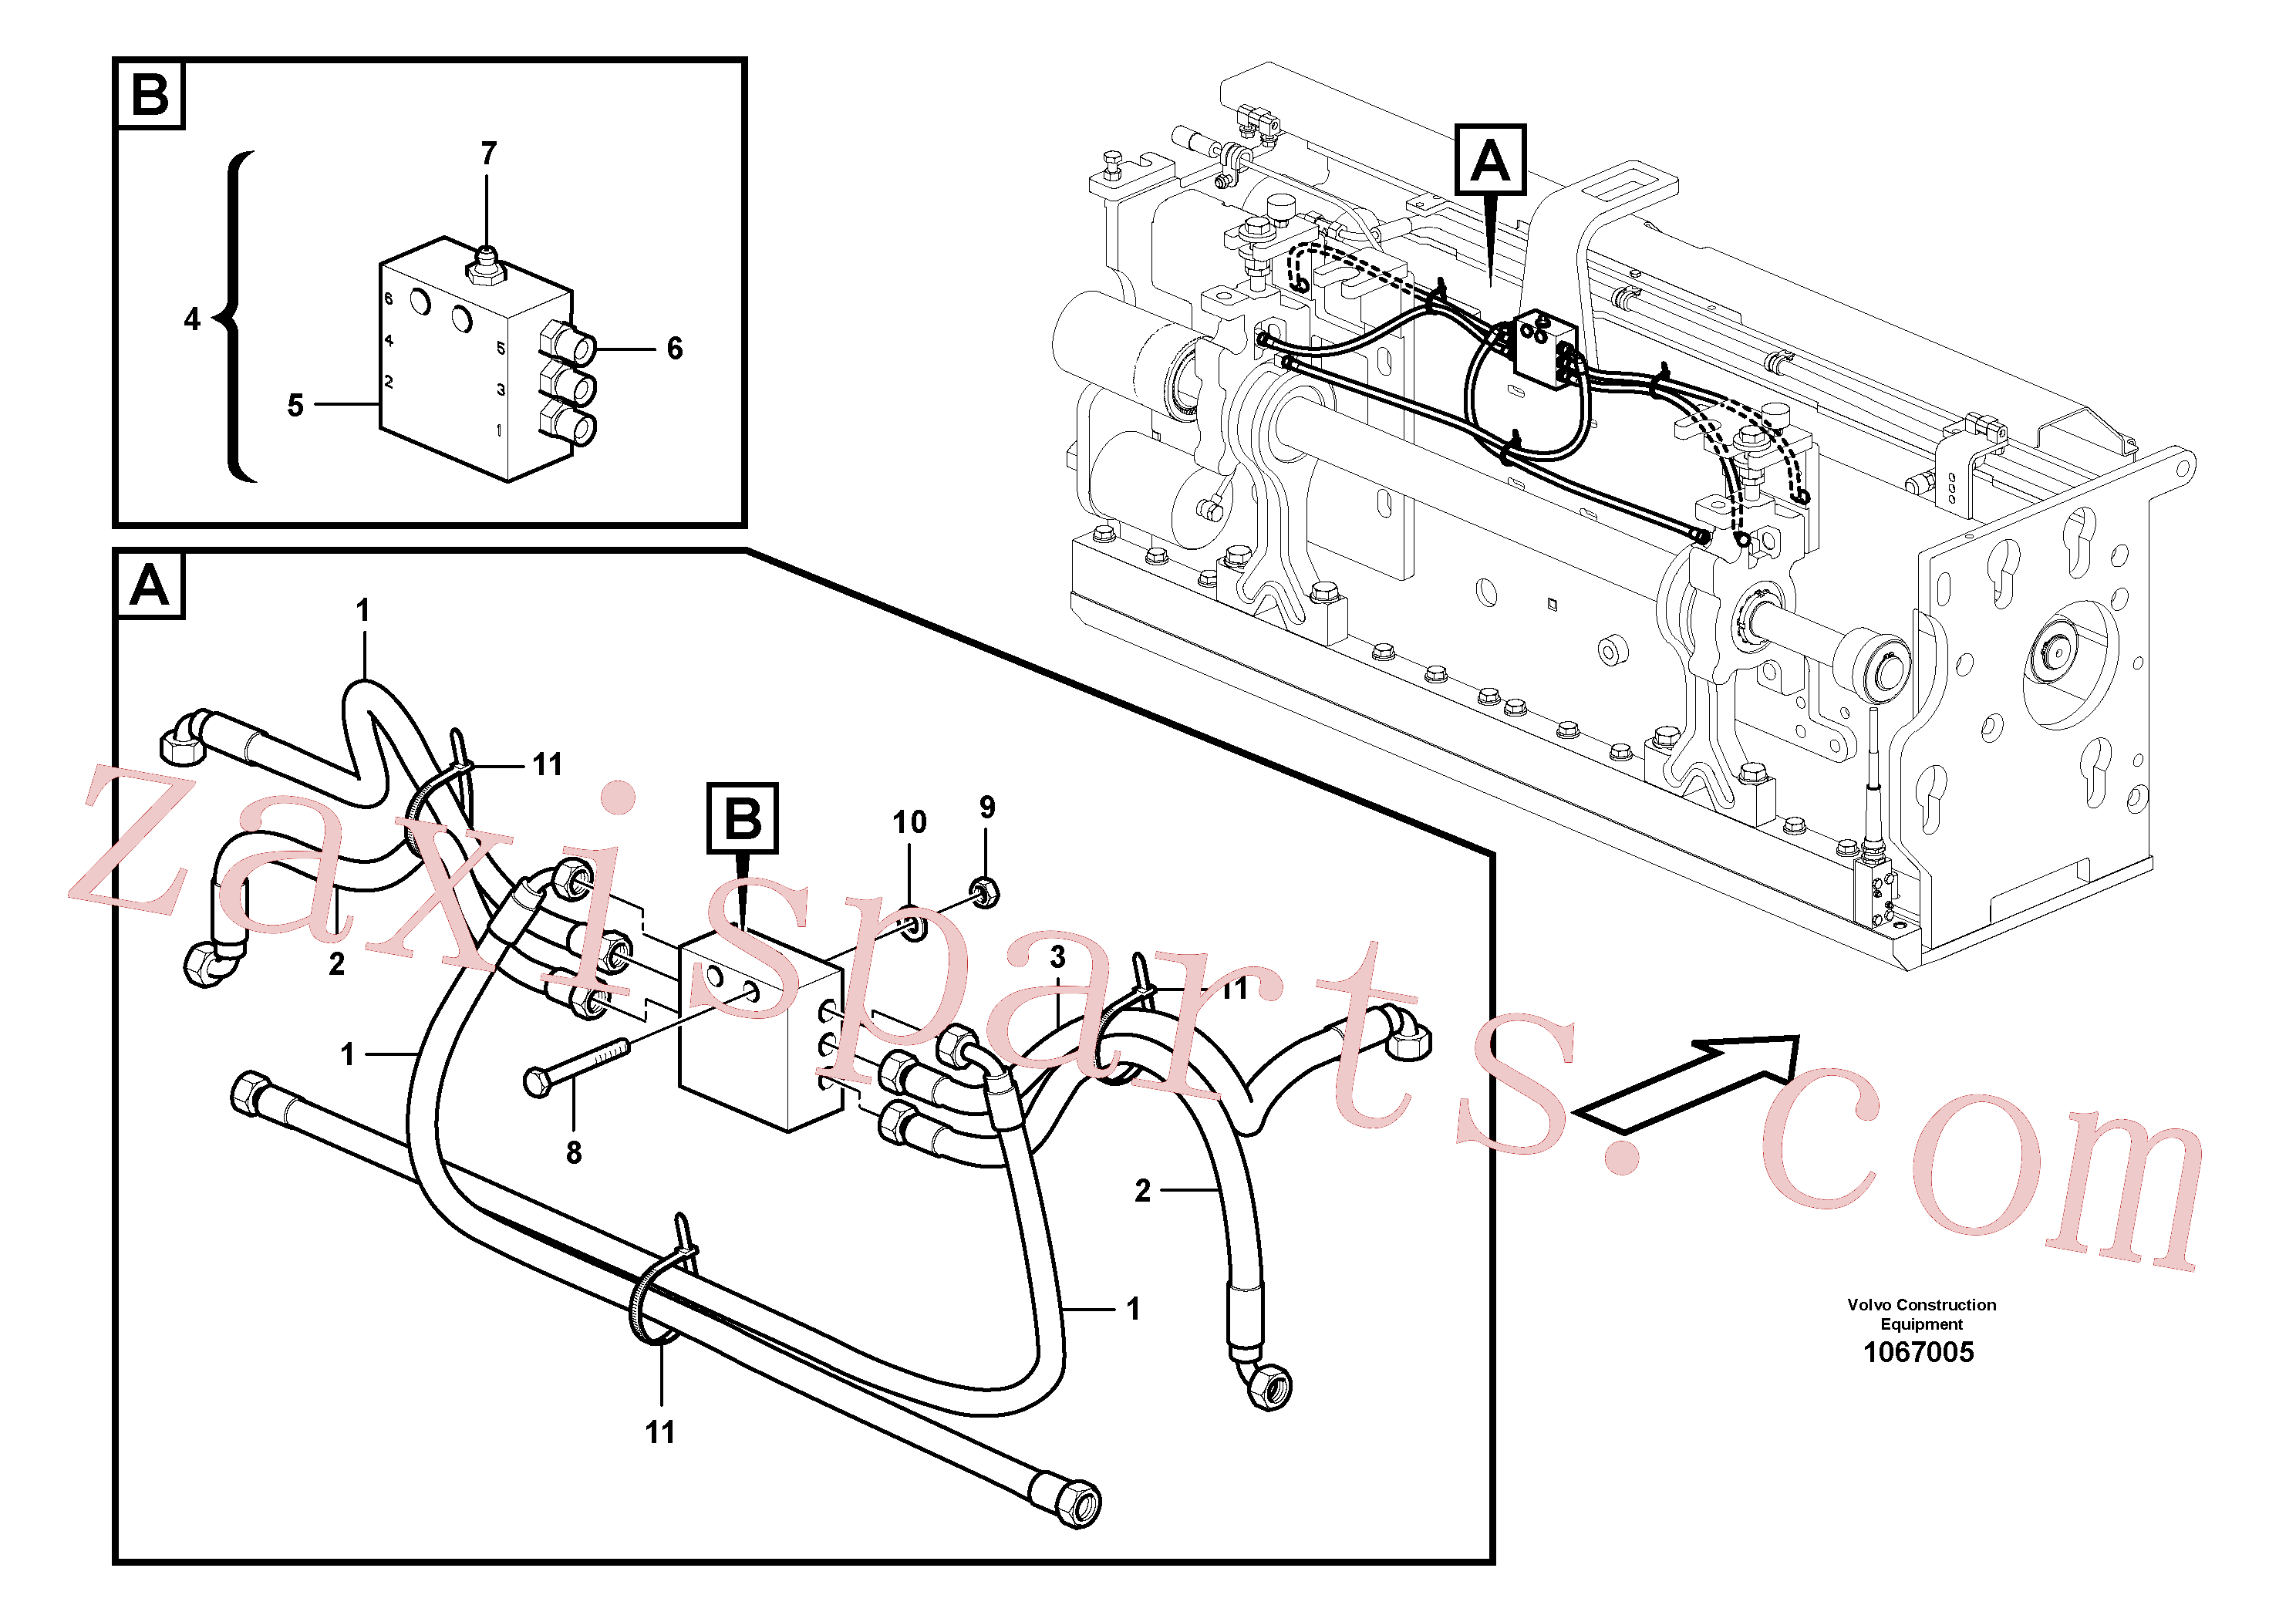 RM54513015 for Volvo Lubrication for extension(1067005 assembly)